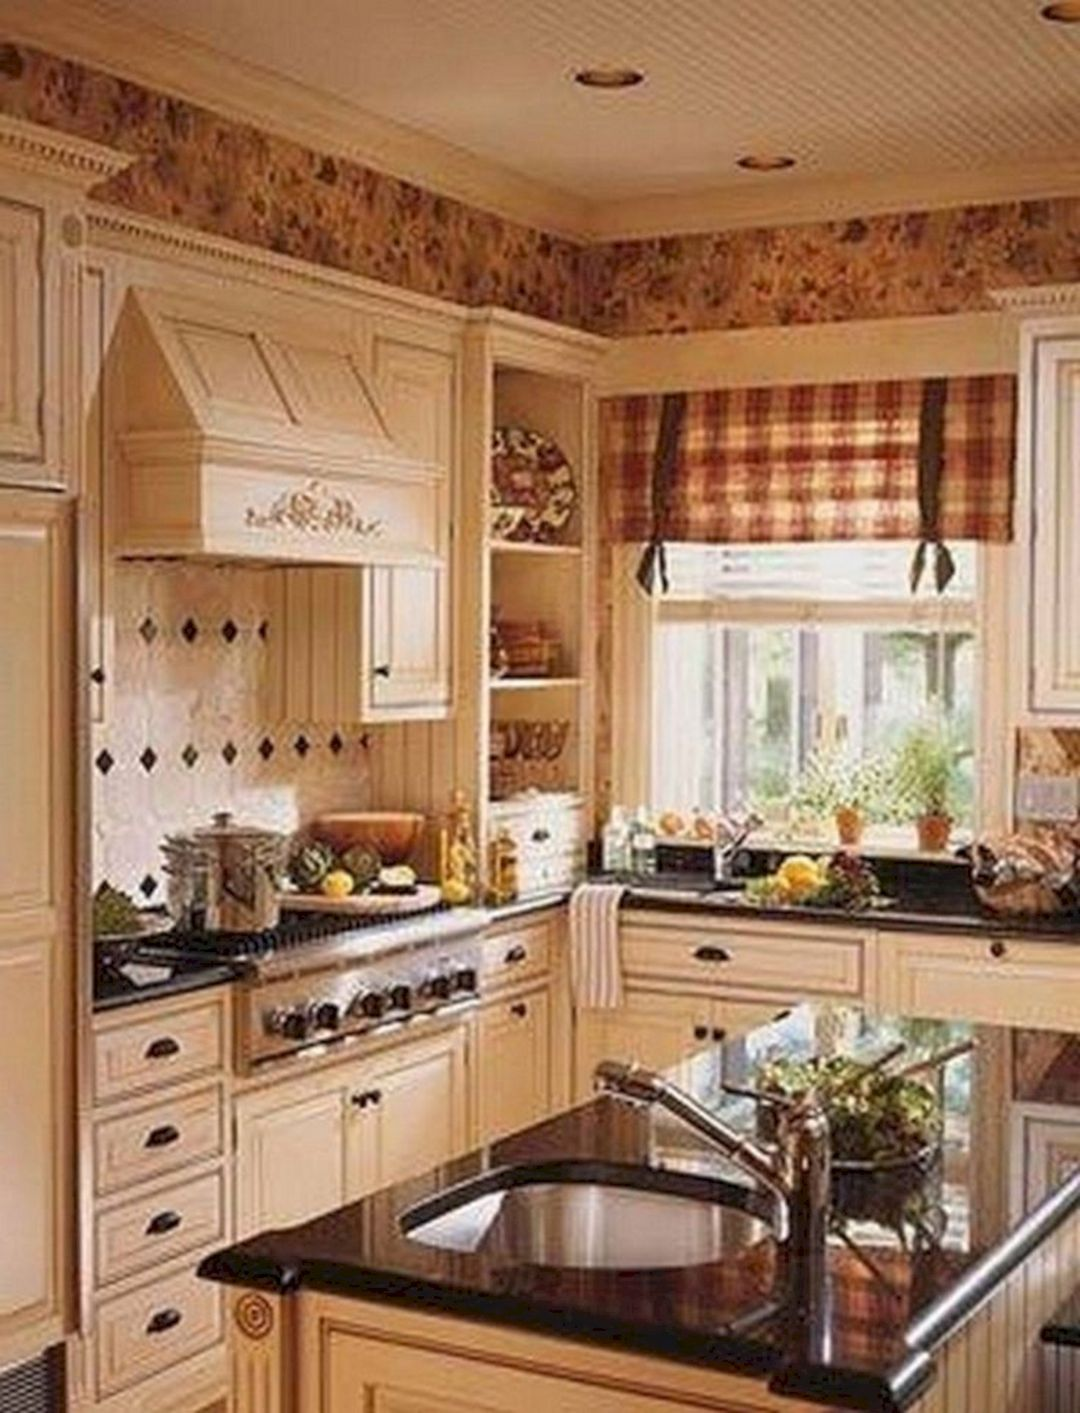 Photo of 12+ Beautiful Simple French Country Kitchen Ideas For Small Space